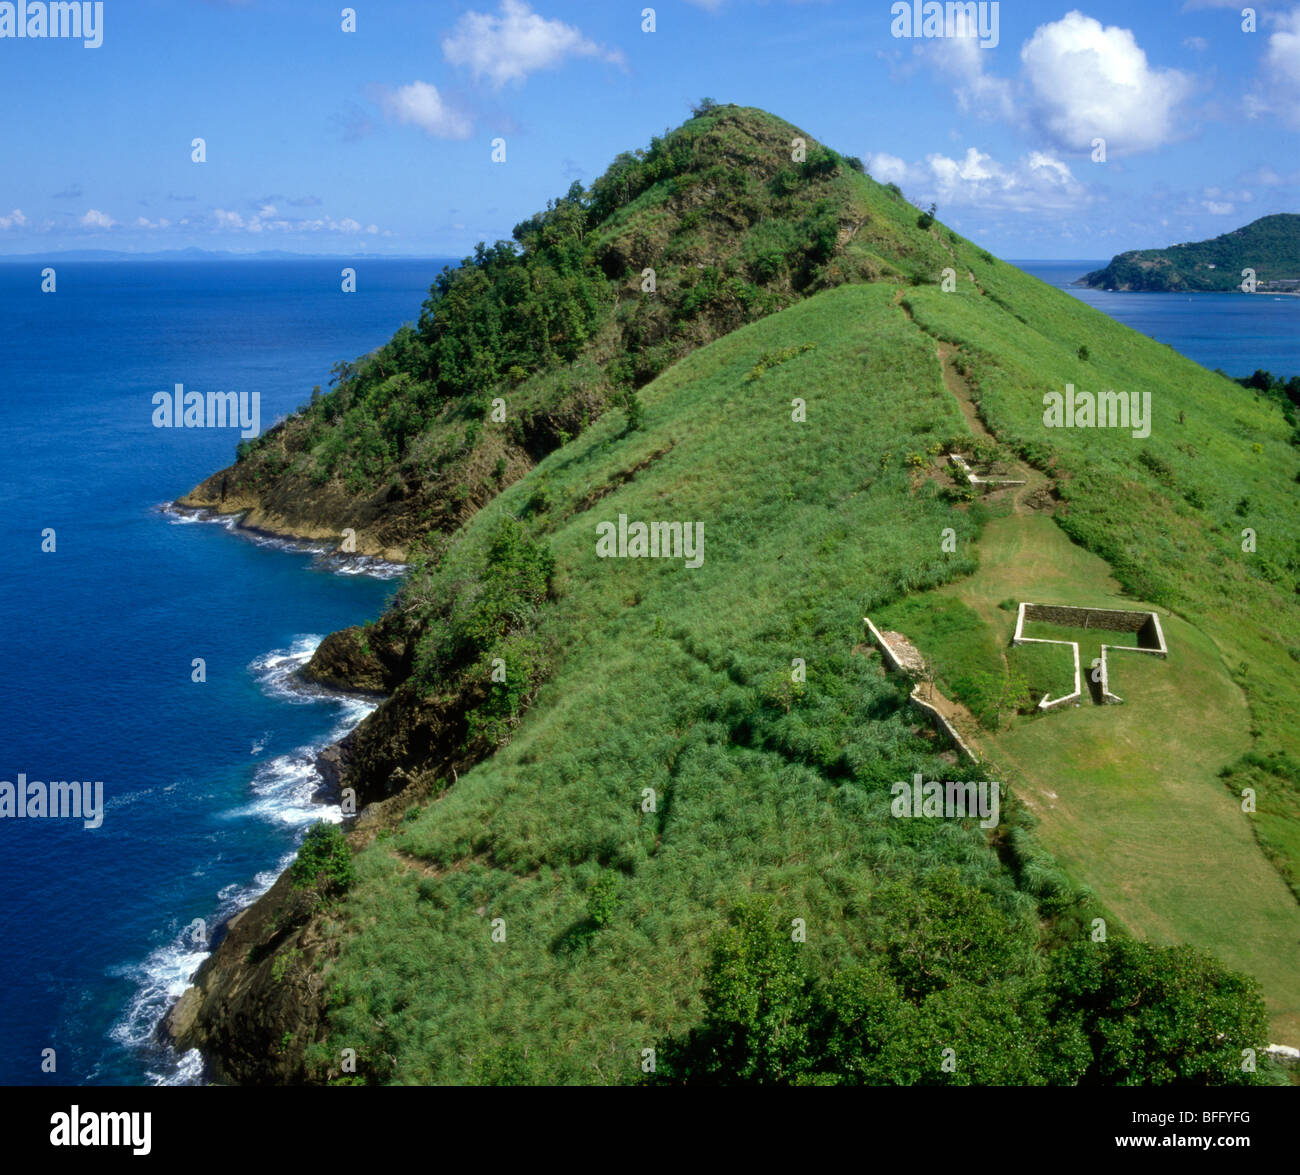 St Lucia Island Shoping